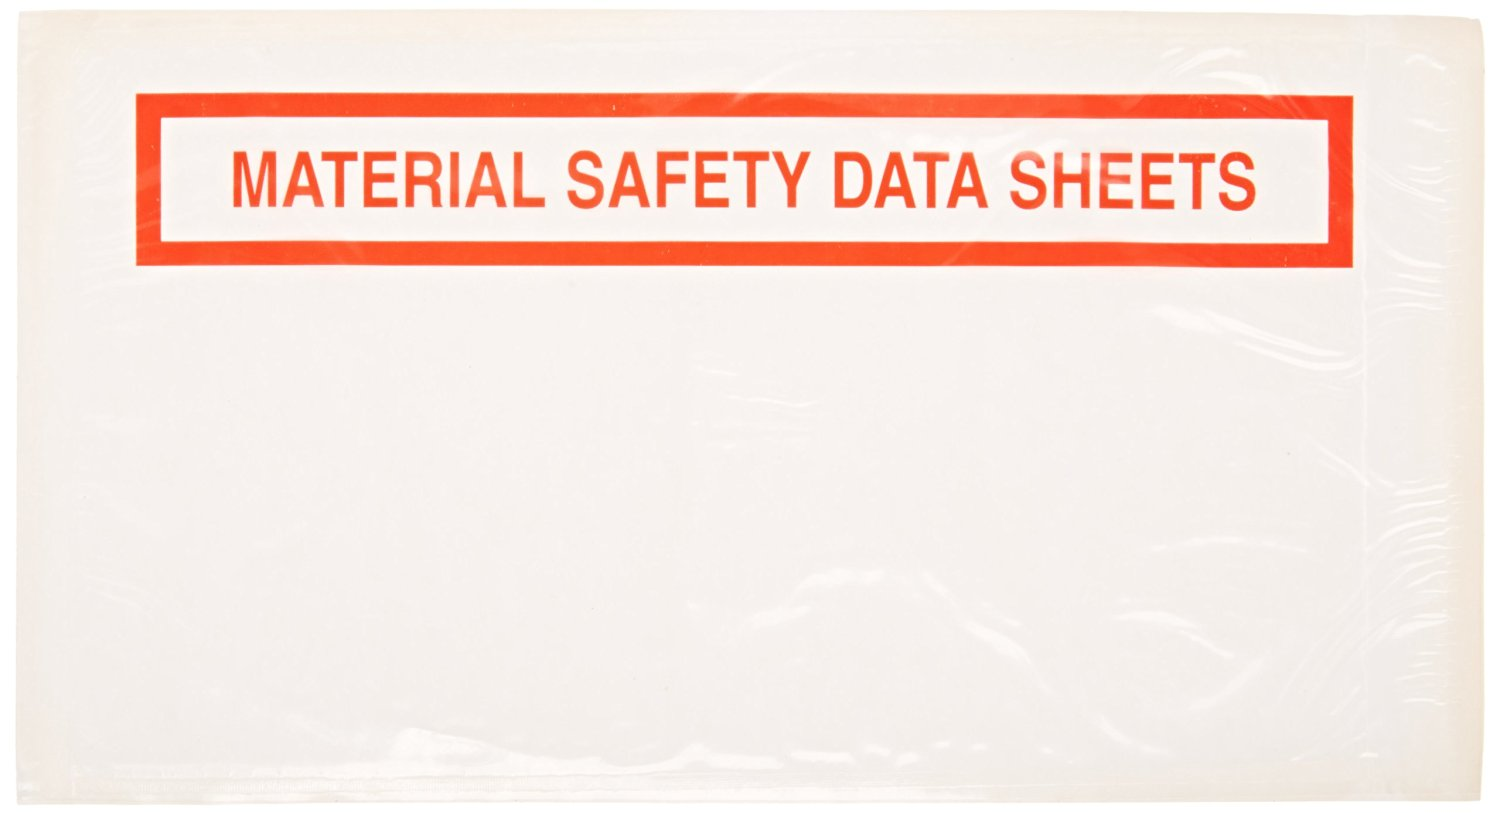 """Aviditi PL464 Poly Envelope, Legend MATERIAL SAFETY DATA SHEETS, 5-1/2"""" Length x 10"""" Width, 2 mil Thick, Red on White (Case of 1000)"""